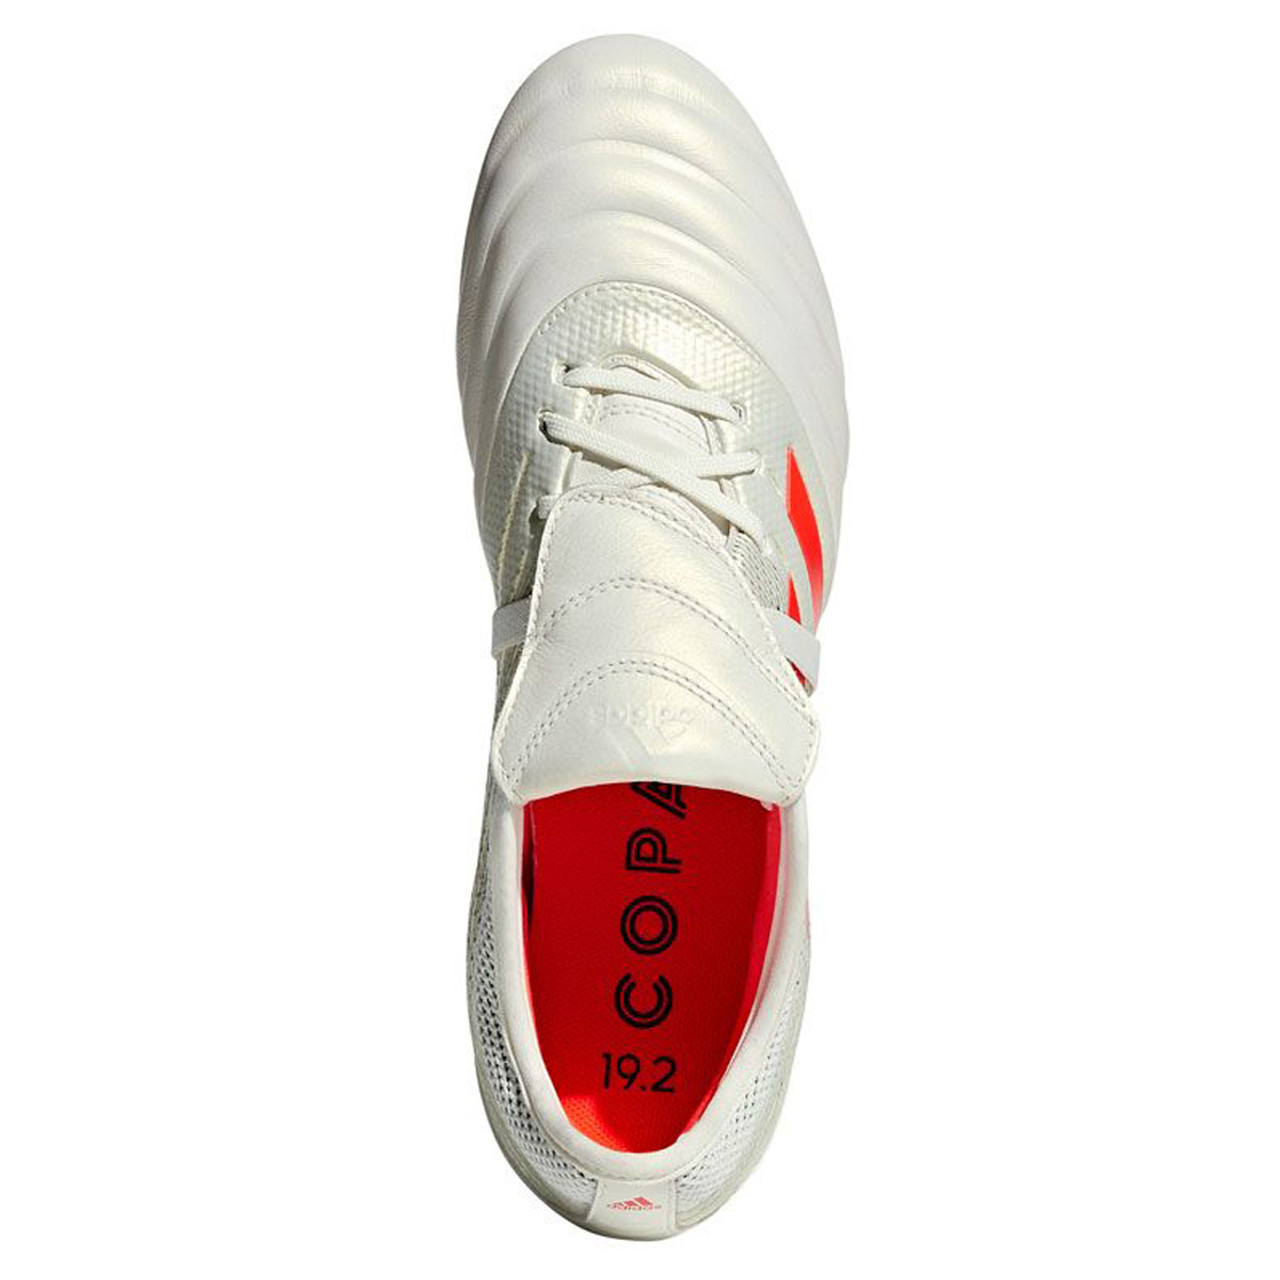 1342280b2 Adidas Copa Gloro 19.2 FG Men's Soccer Cleats D98060 - White, Solar Red